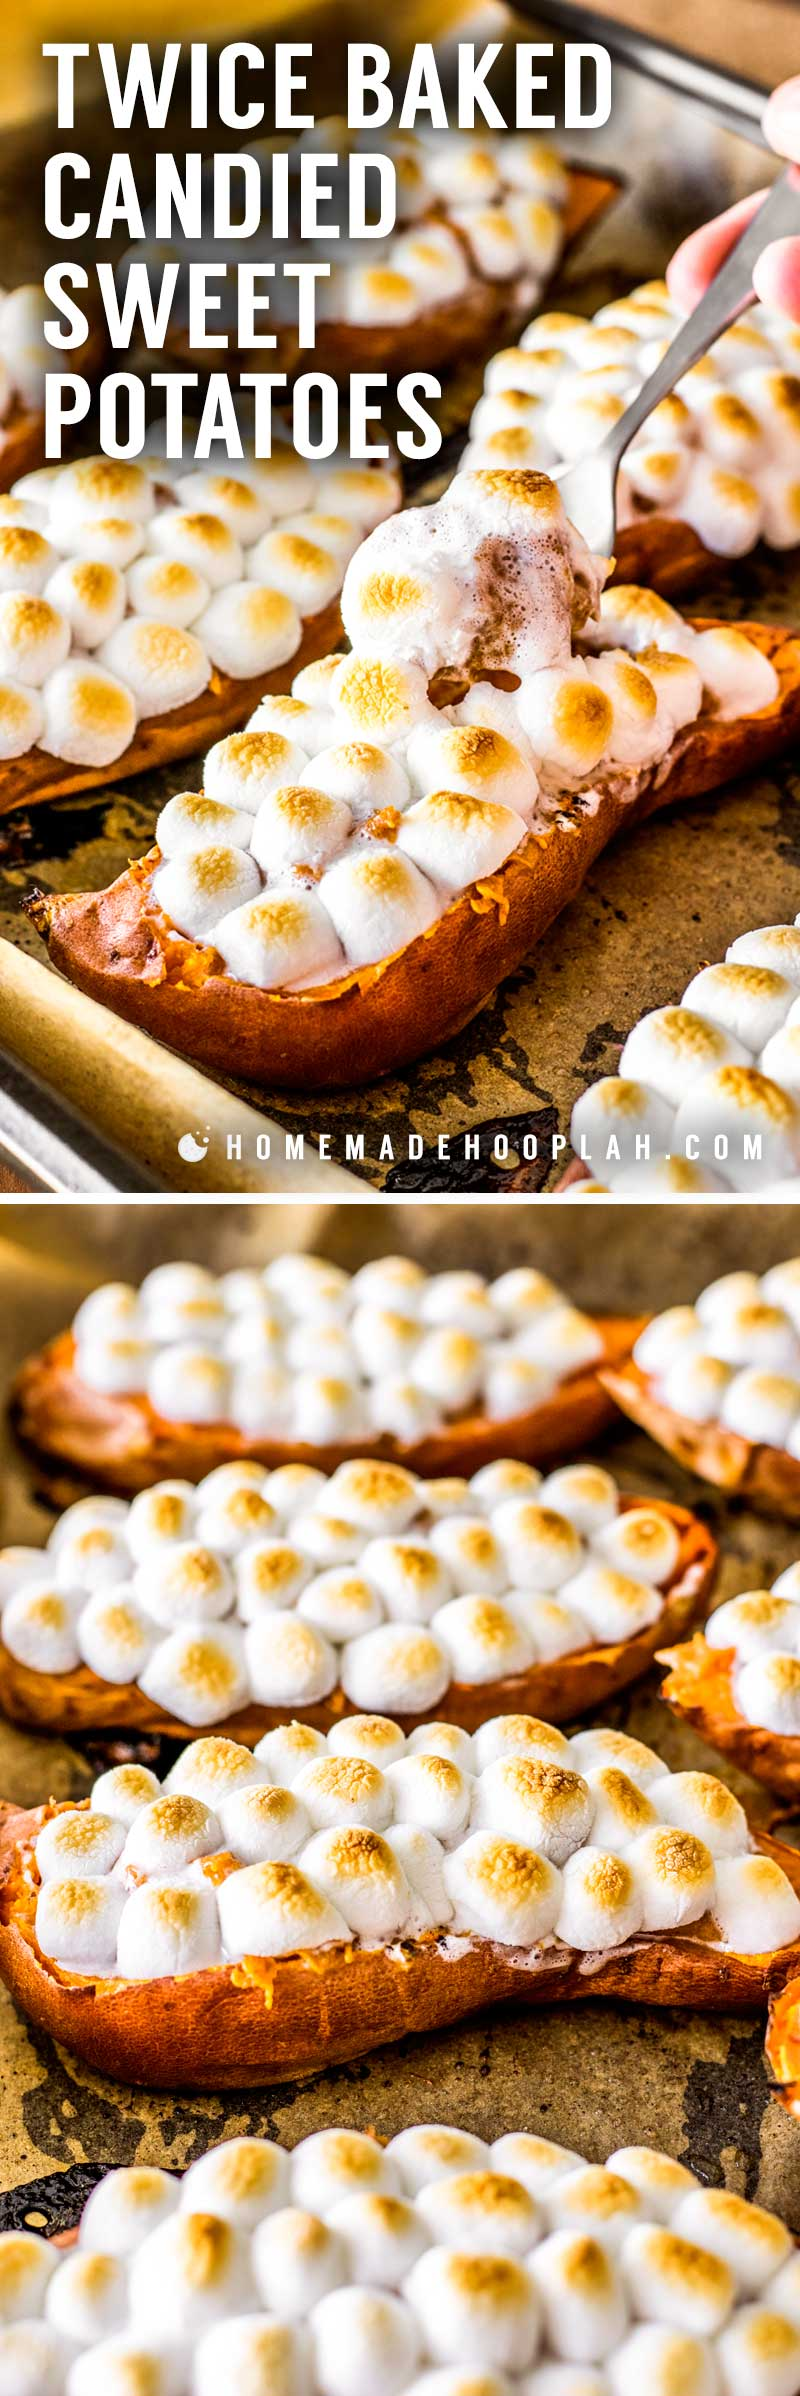 Twice Baked Candied Sweet Potatoes! Twice baked sweet potatoes sweetened with brown sugar, cinnamon, nutmeg, and ginger, then topped with mini marshmallows. Makes for great individual side dishes! | HomemadeHooplah.com